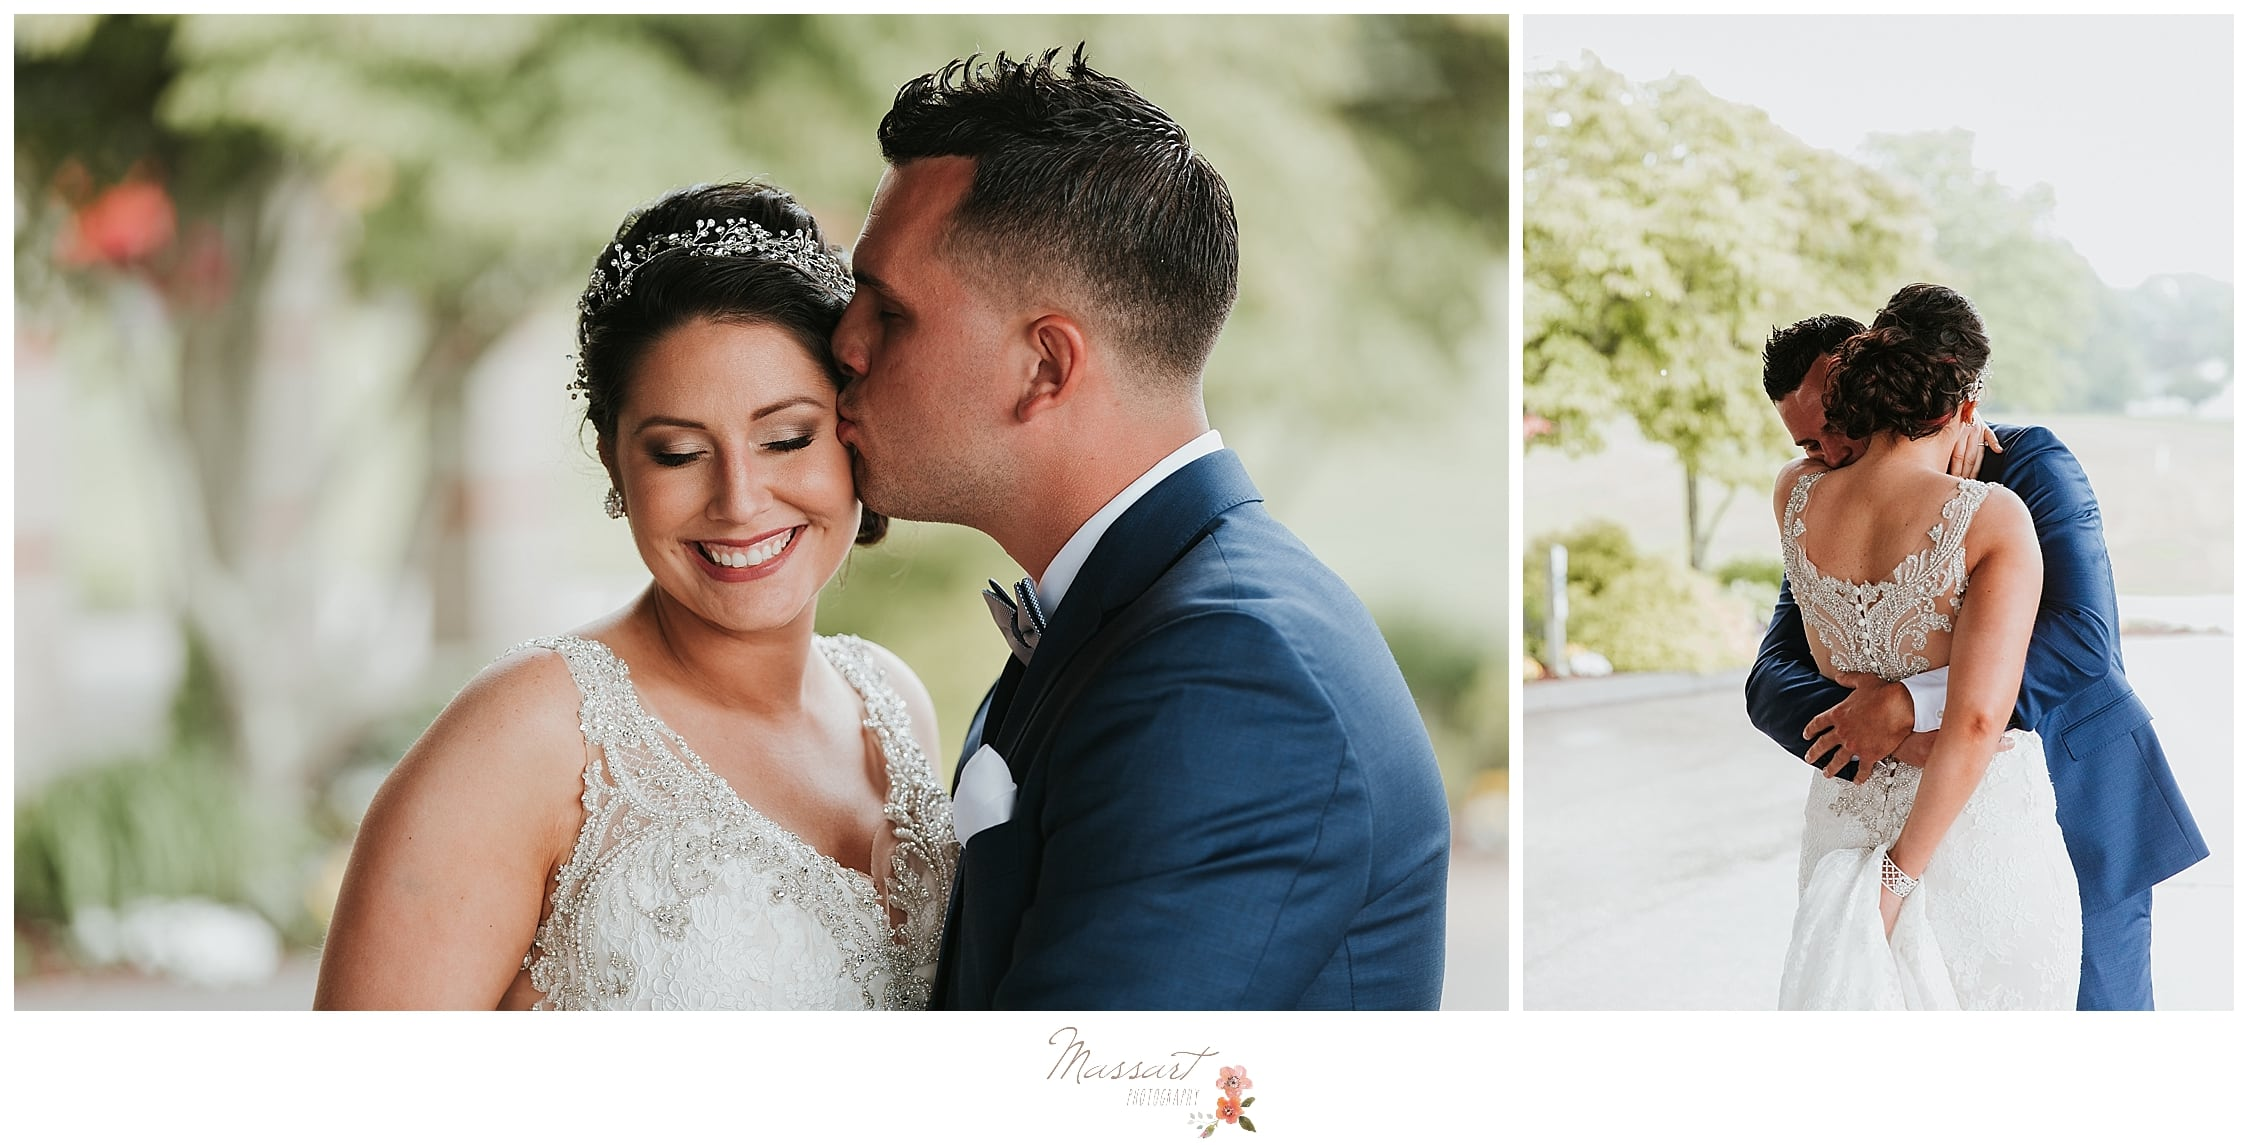 Bride and groom portrait during summer wedding photographed by RI wedding photographers Massart Photography.